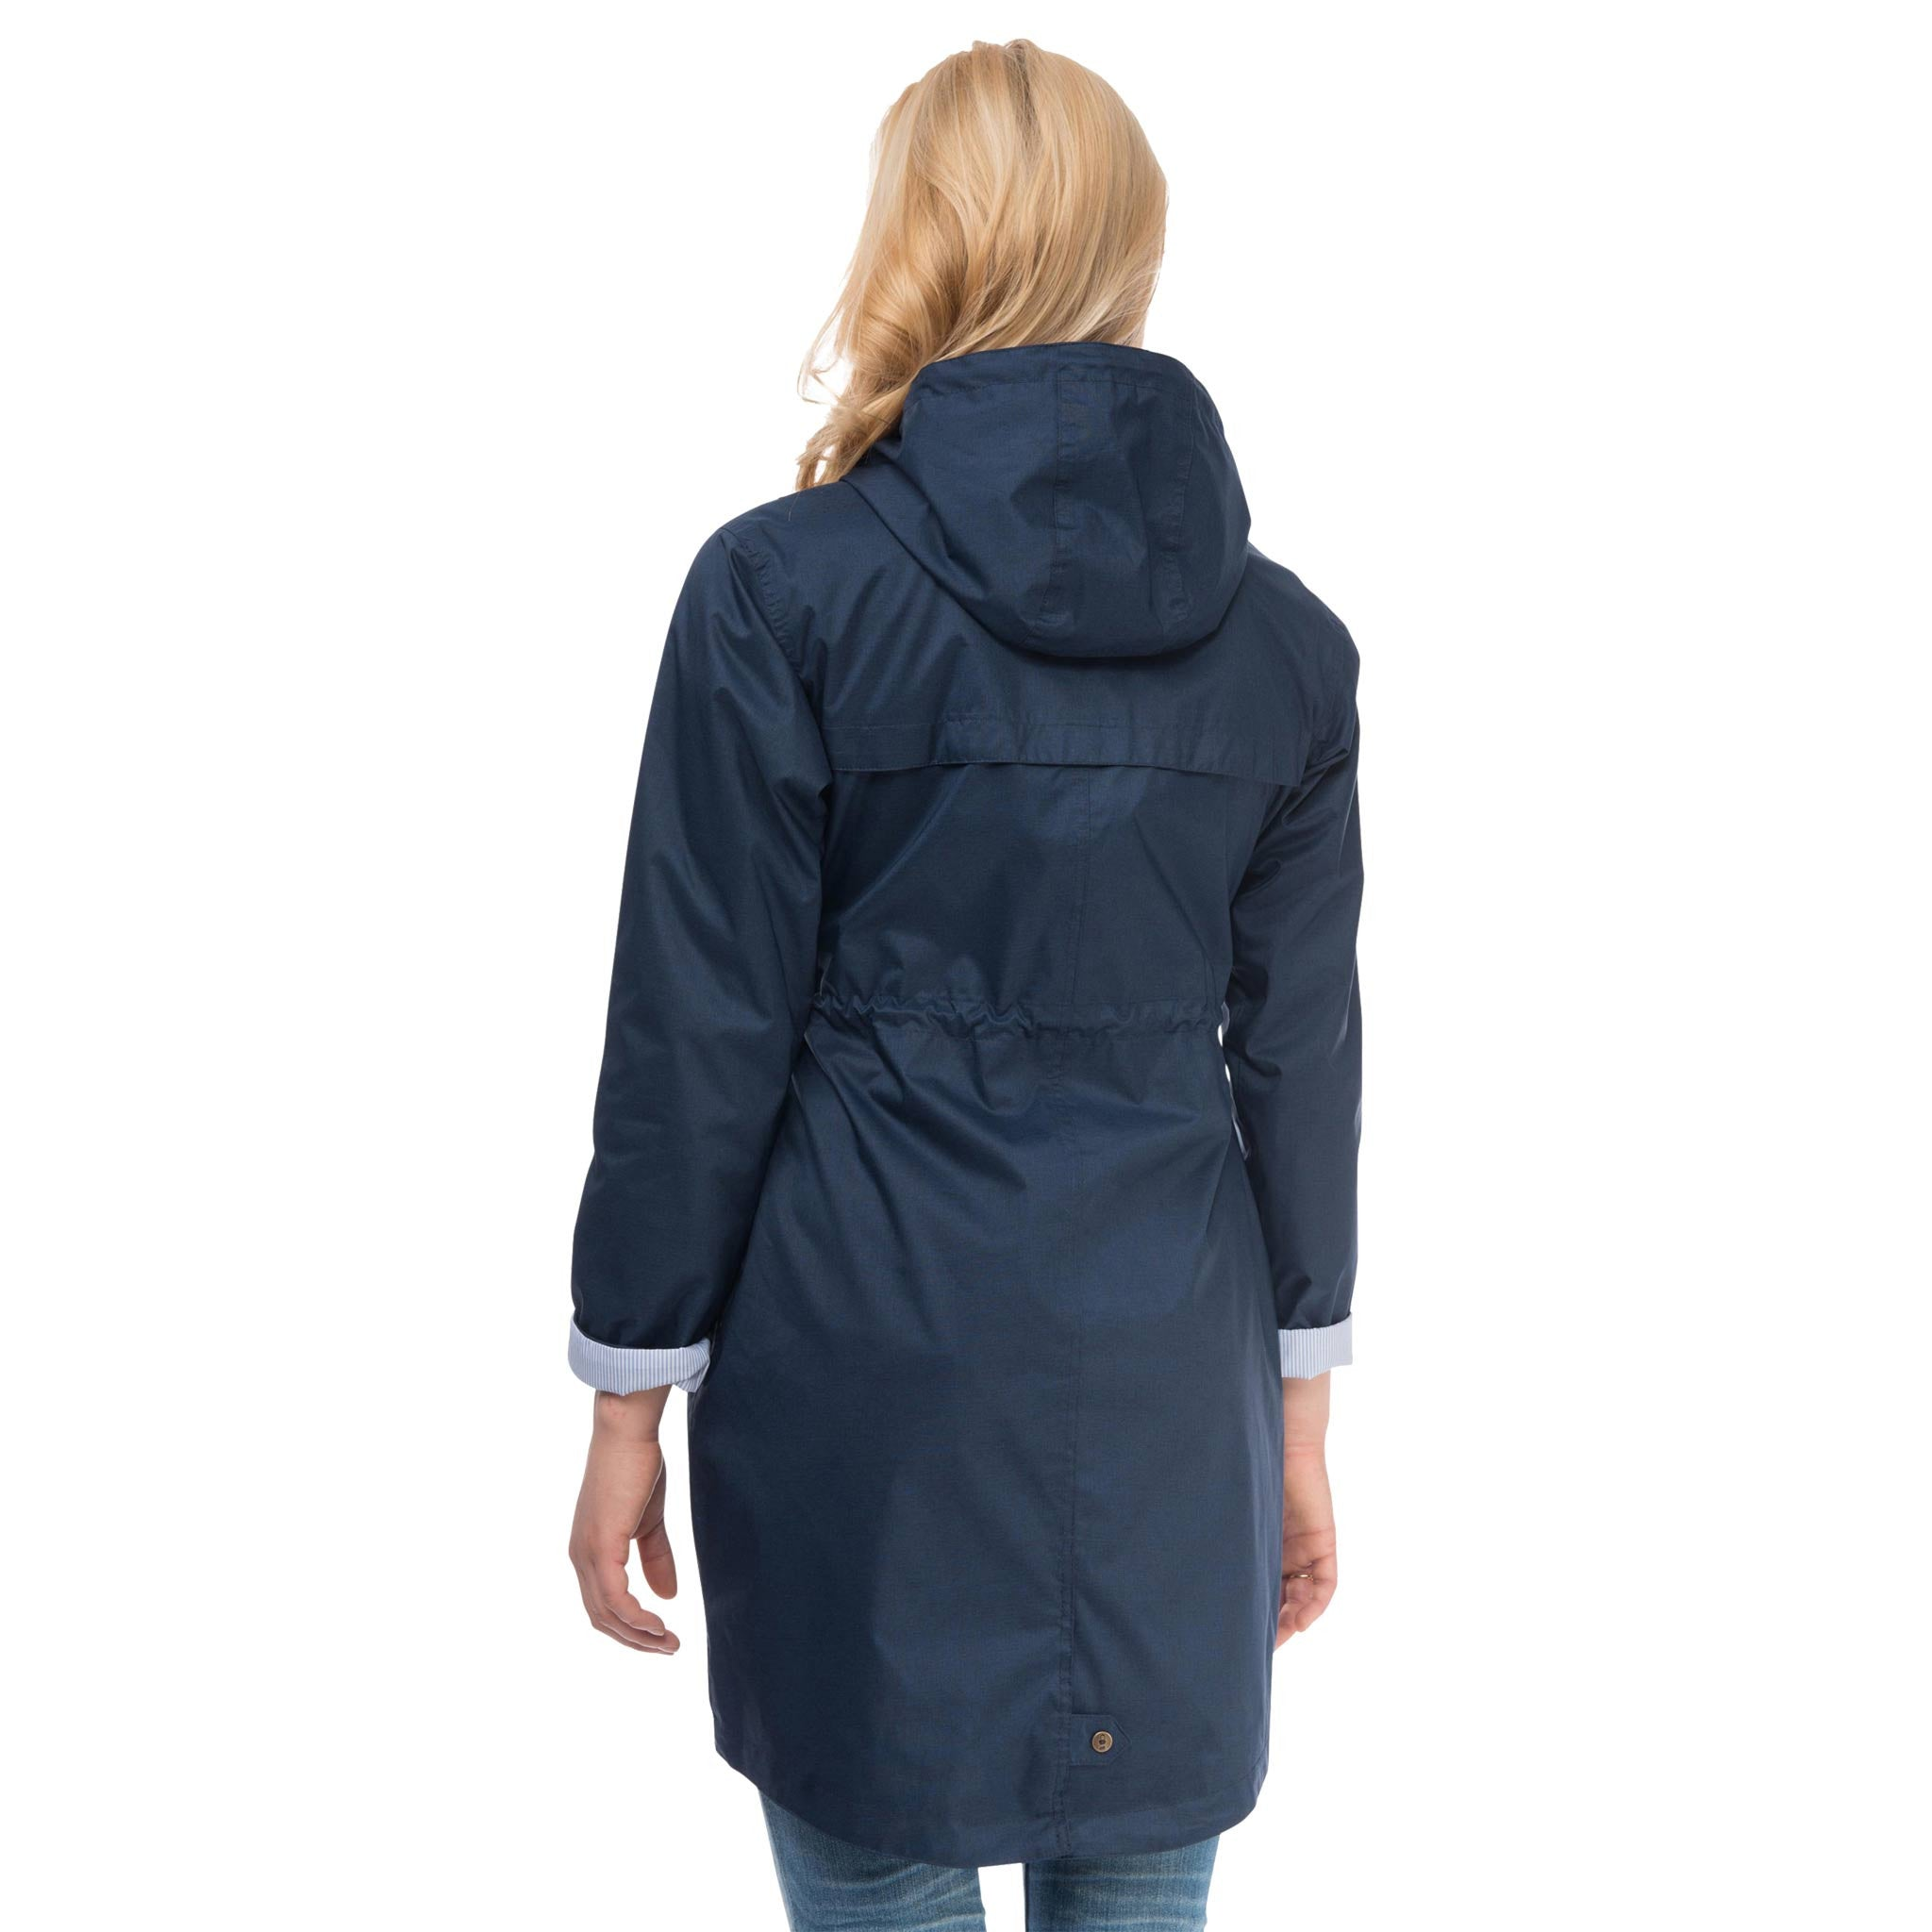 Fayda Womens Waterproof Parka in Night Sky Navy, Modelled Back View | Lighthouse